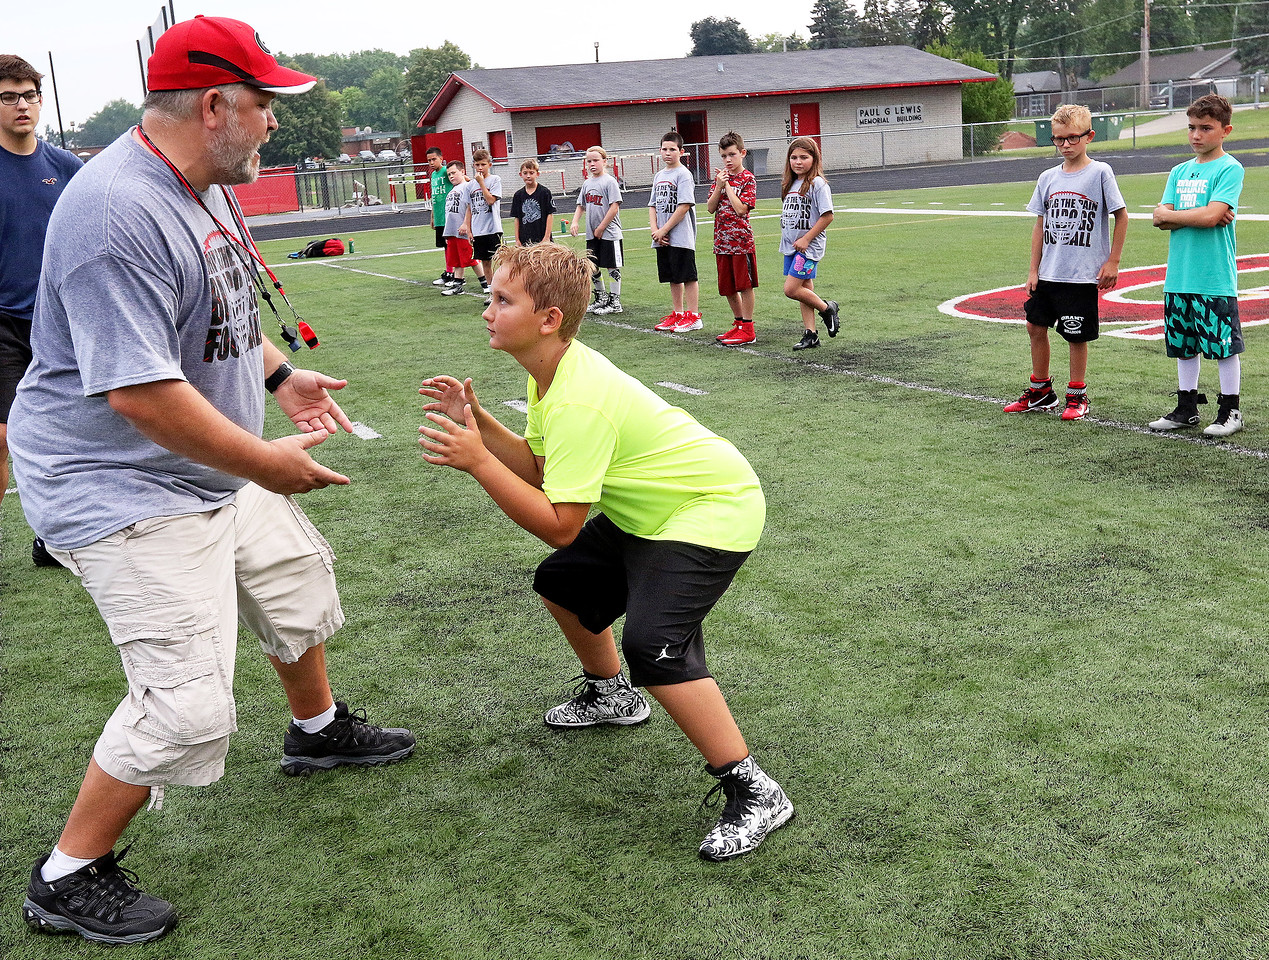 Candace H. Johnson-For Shaw Media John Jared, of Round Lake, president of the Grant Bulldogs Youth Football program, works with Jack Hembrey, 10, of Fox Lake on how to get down low for blocking during the Grant Bulldogs Youth Football Clinic at Grant Community High School.